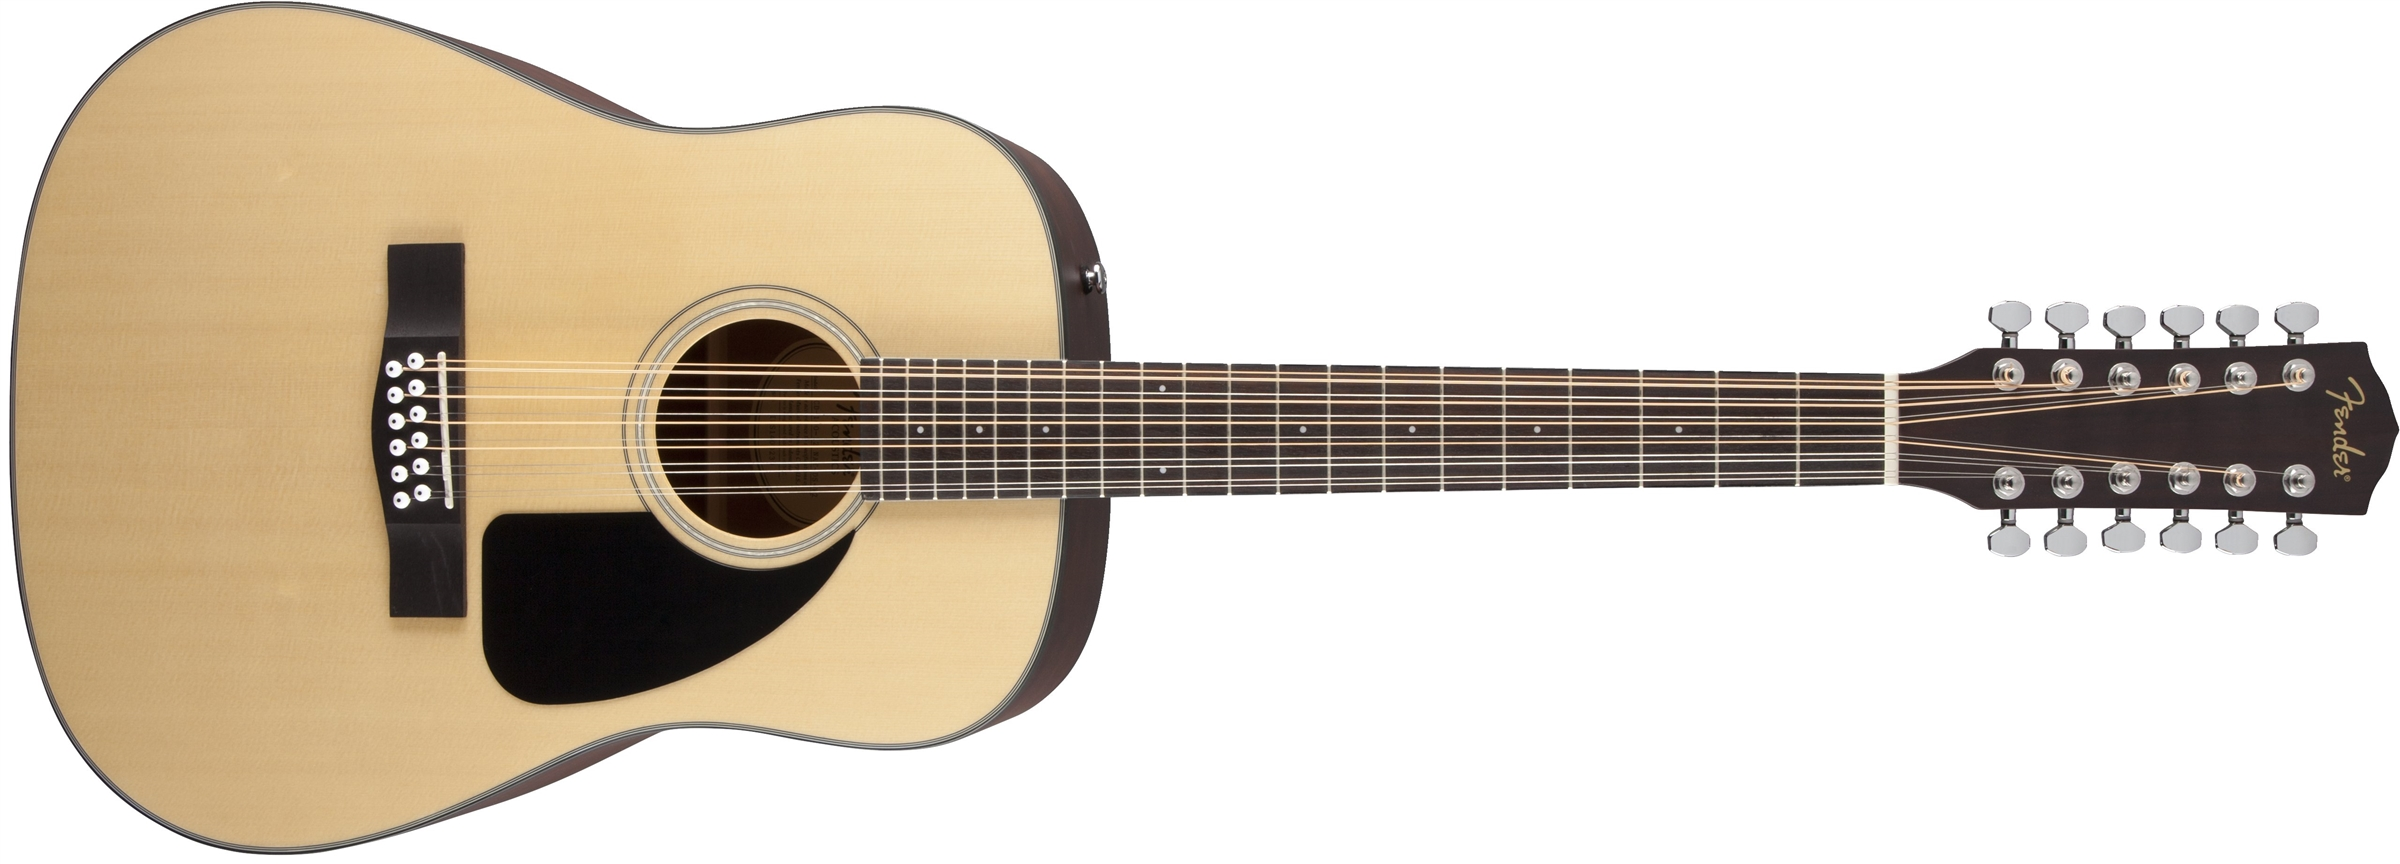 cd 100 12 string acoustic guitars 12 String Electric Guitar tap to expand